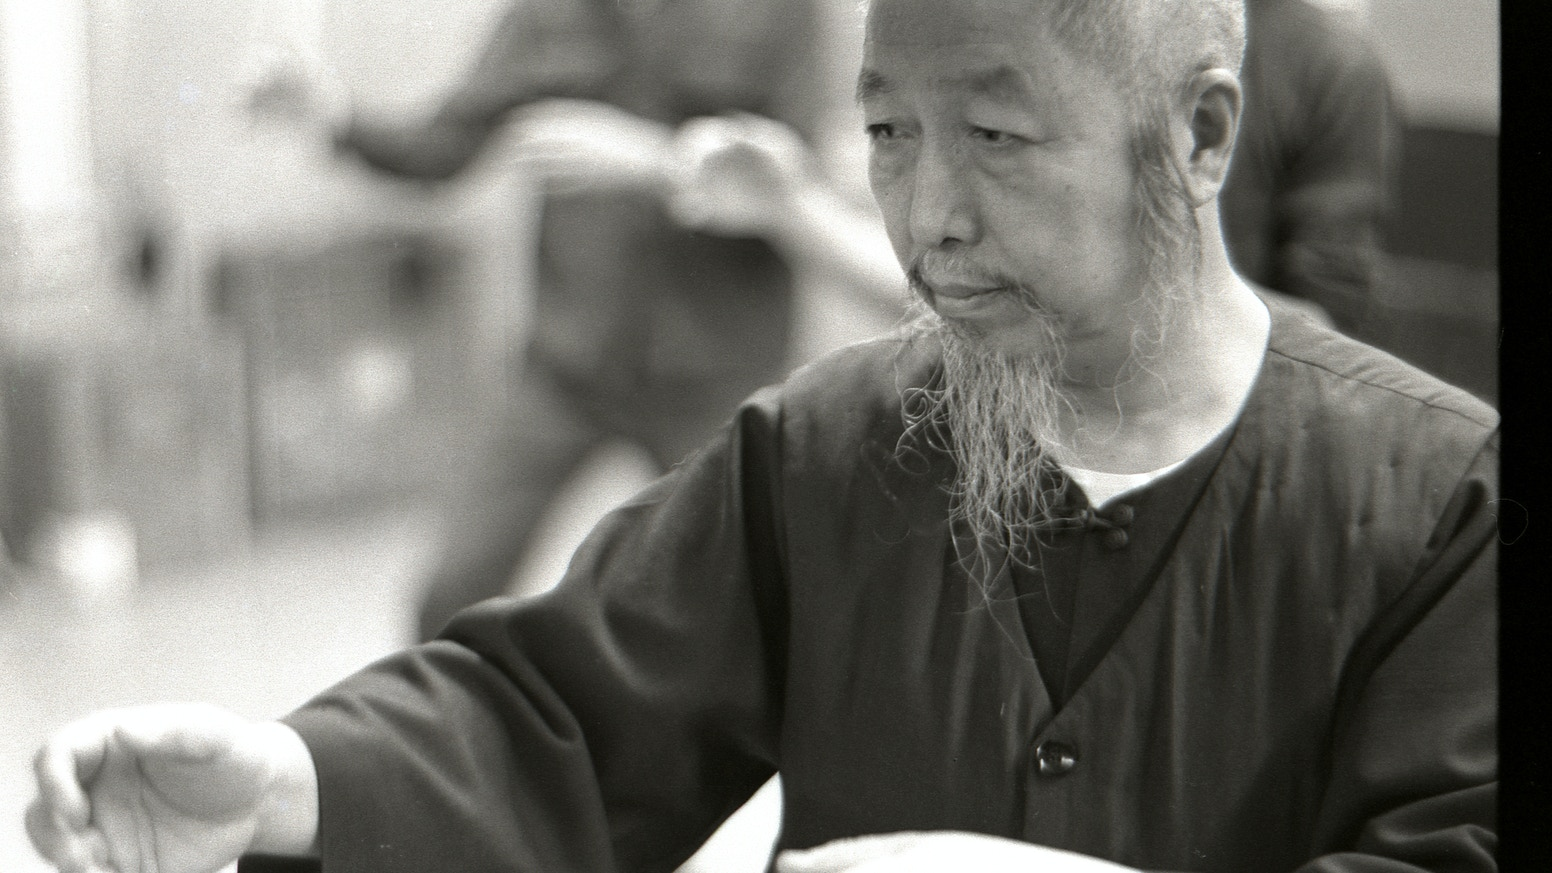 A documentary about the great Tai Chi master, Cheng Man-Ching, who brought his profound teachings West in the swinging, turbulent 60s.